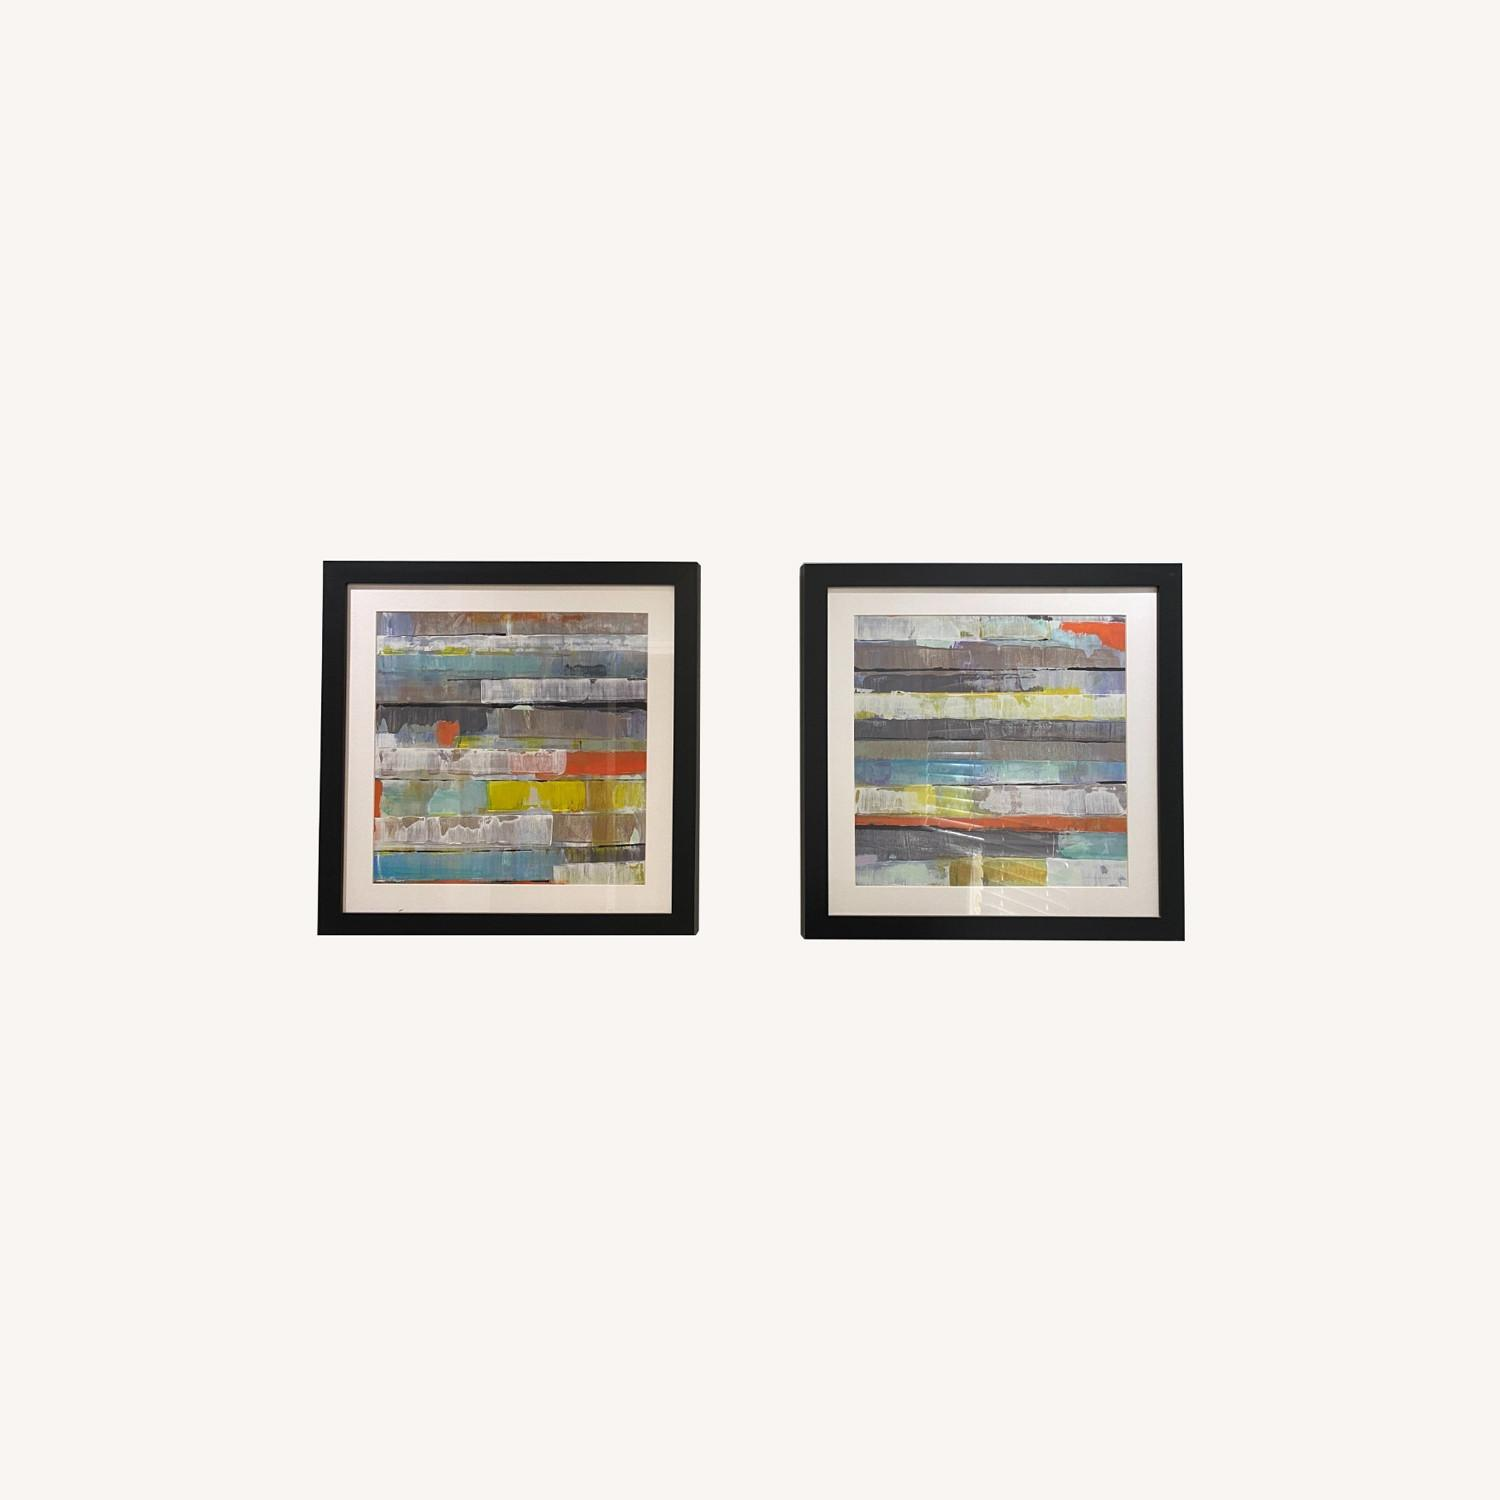 Abstract Z-Gallerie Wall Art: Metro 1 & 2 - image-0